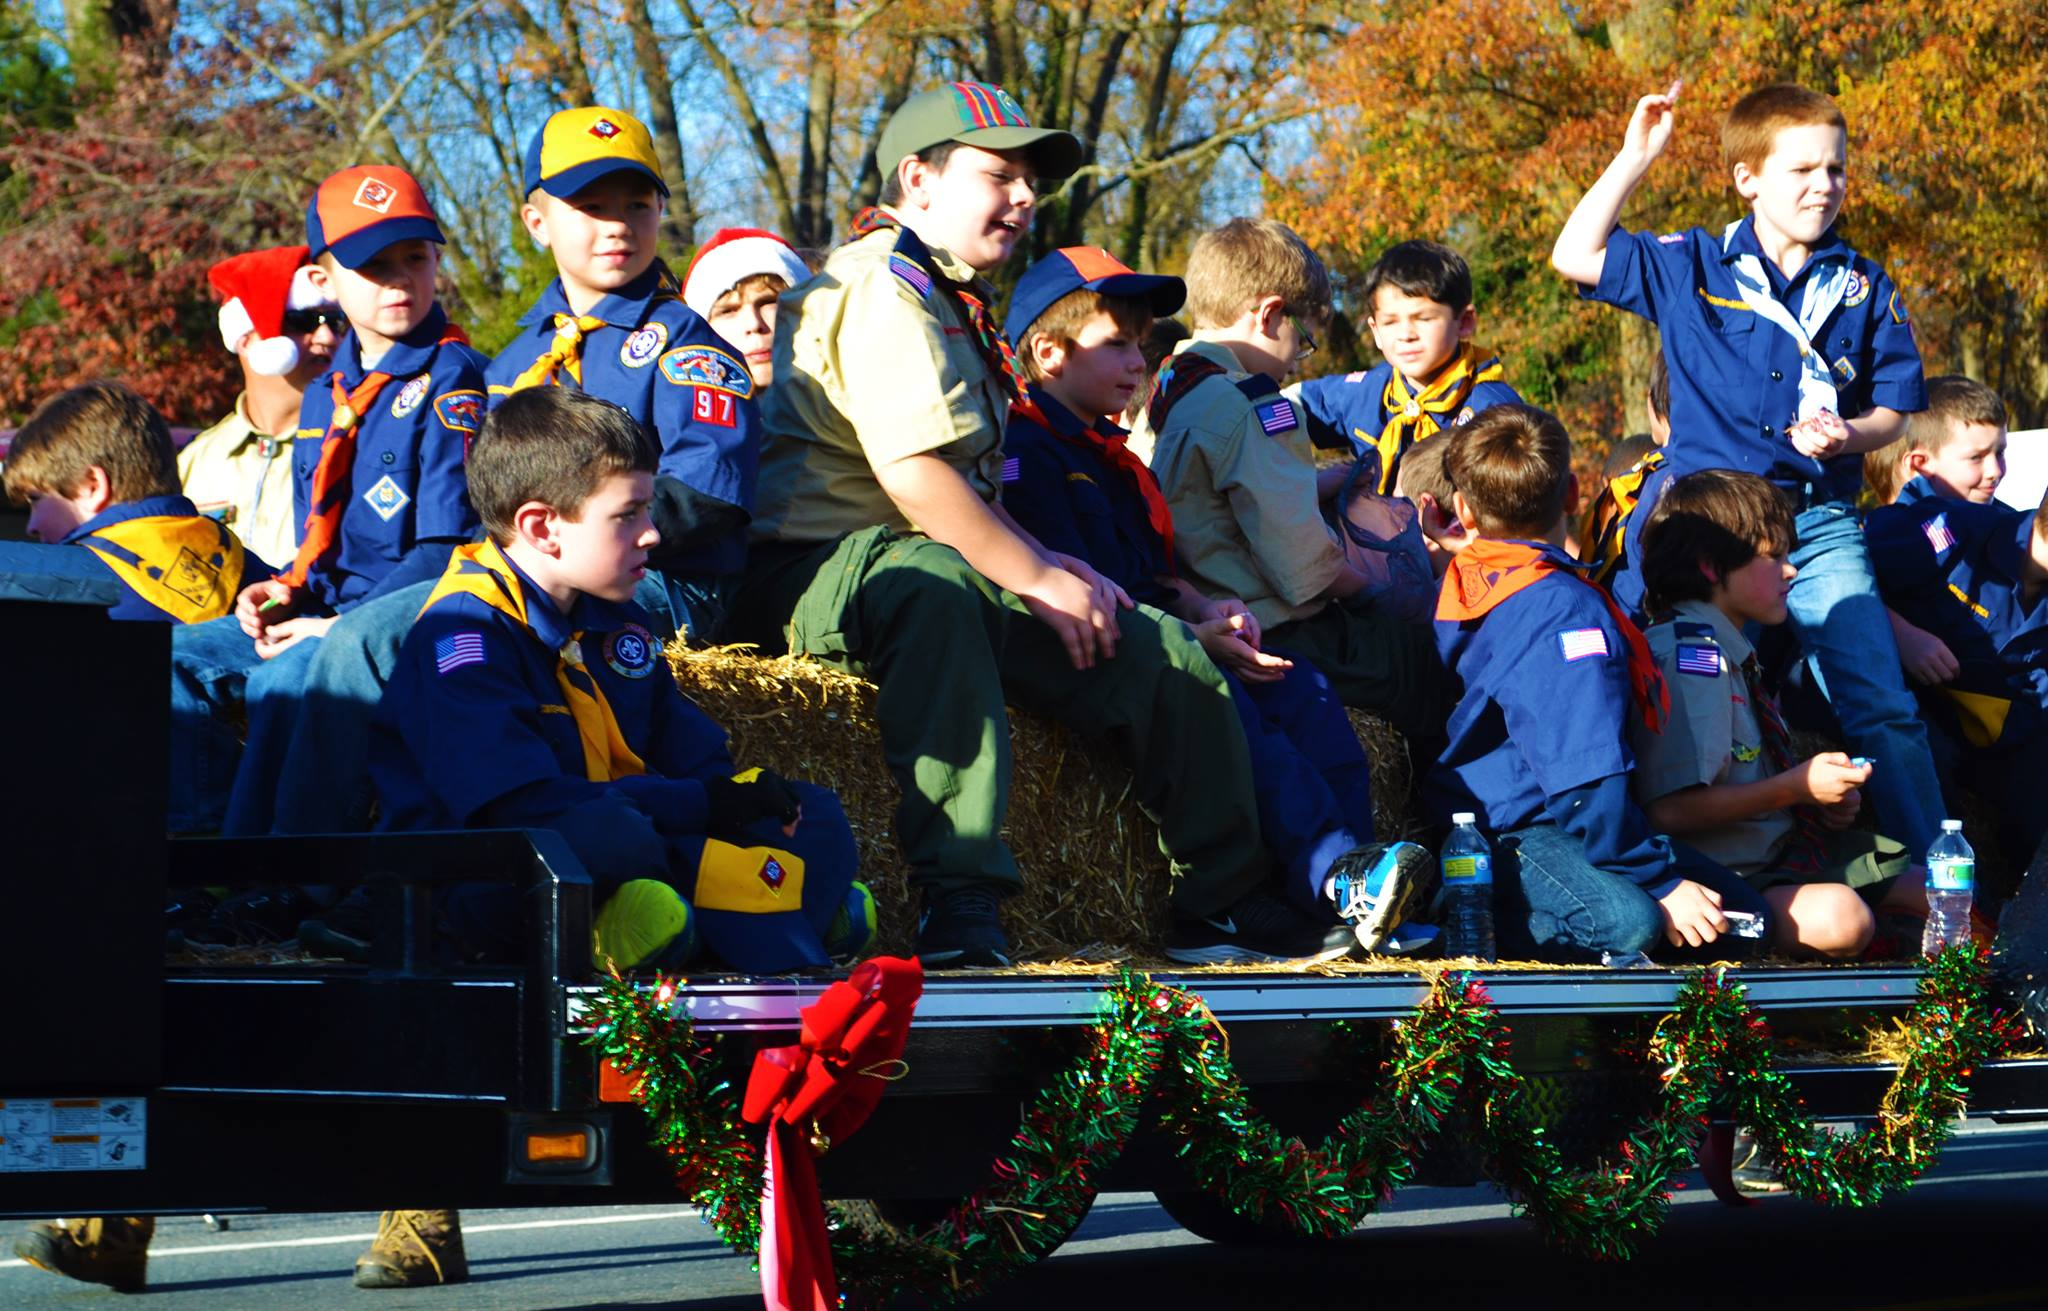 Christmas parade in Indian Trail